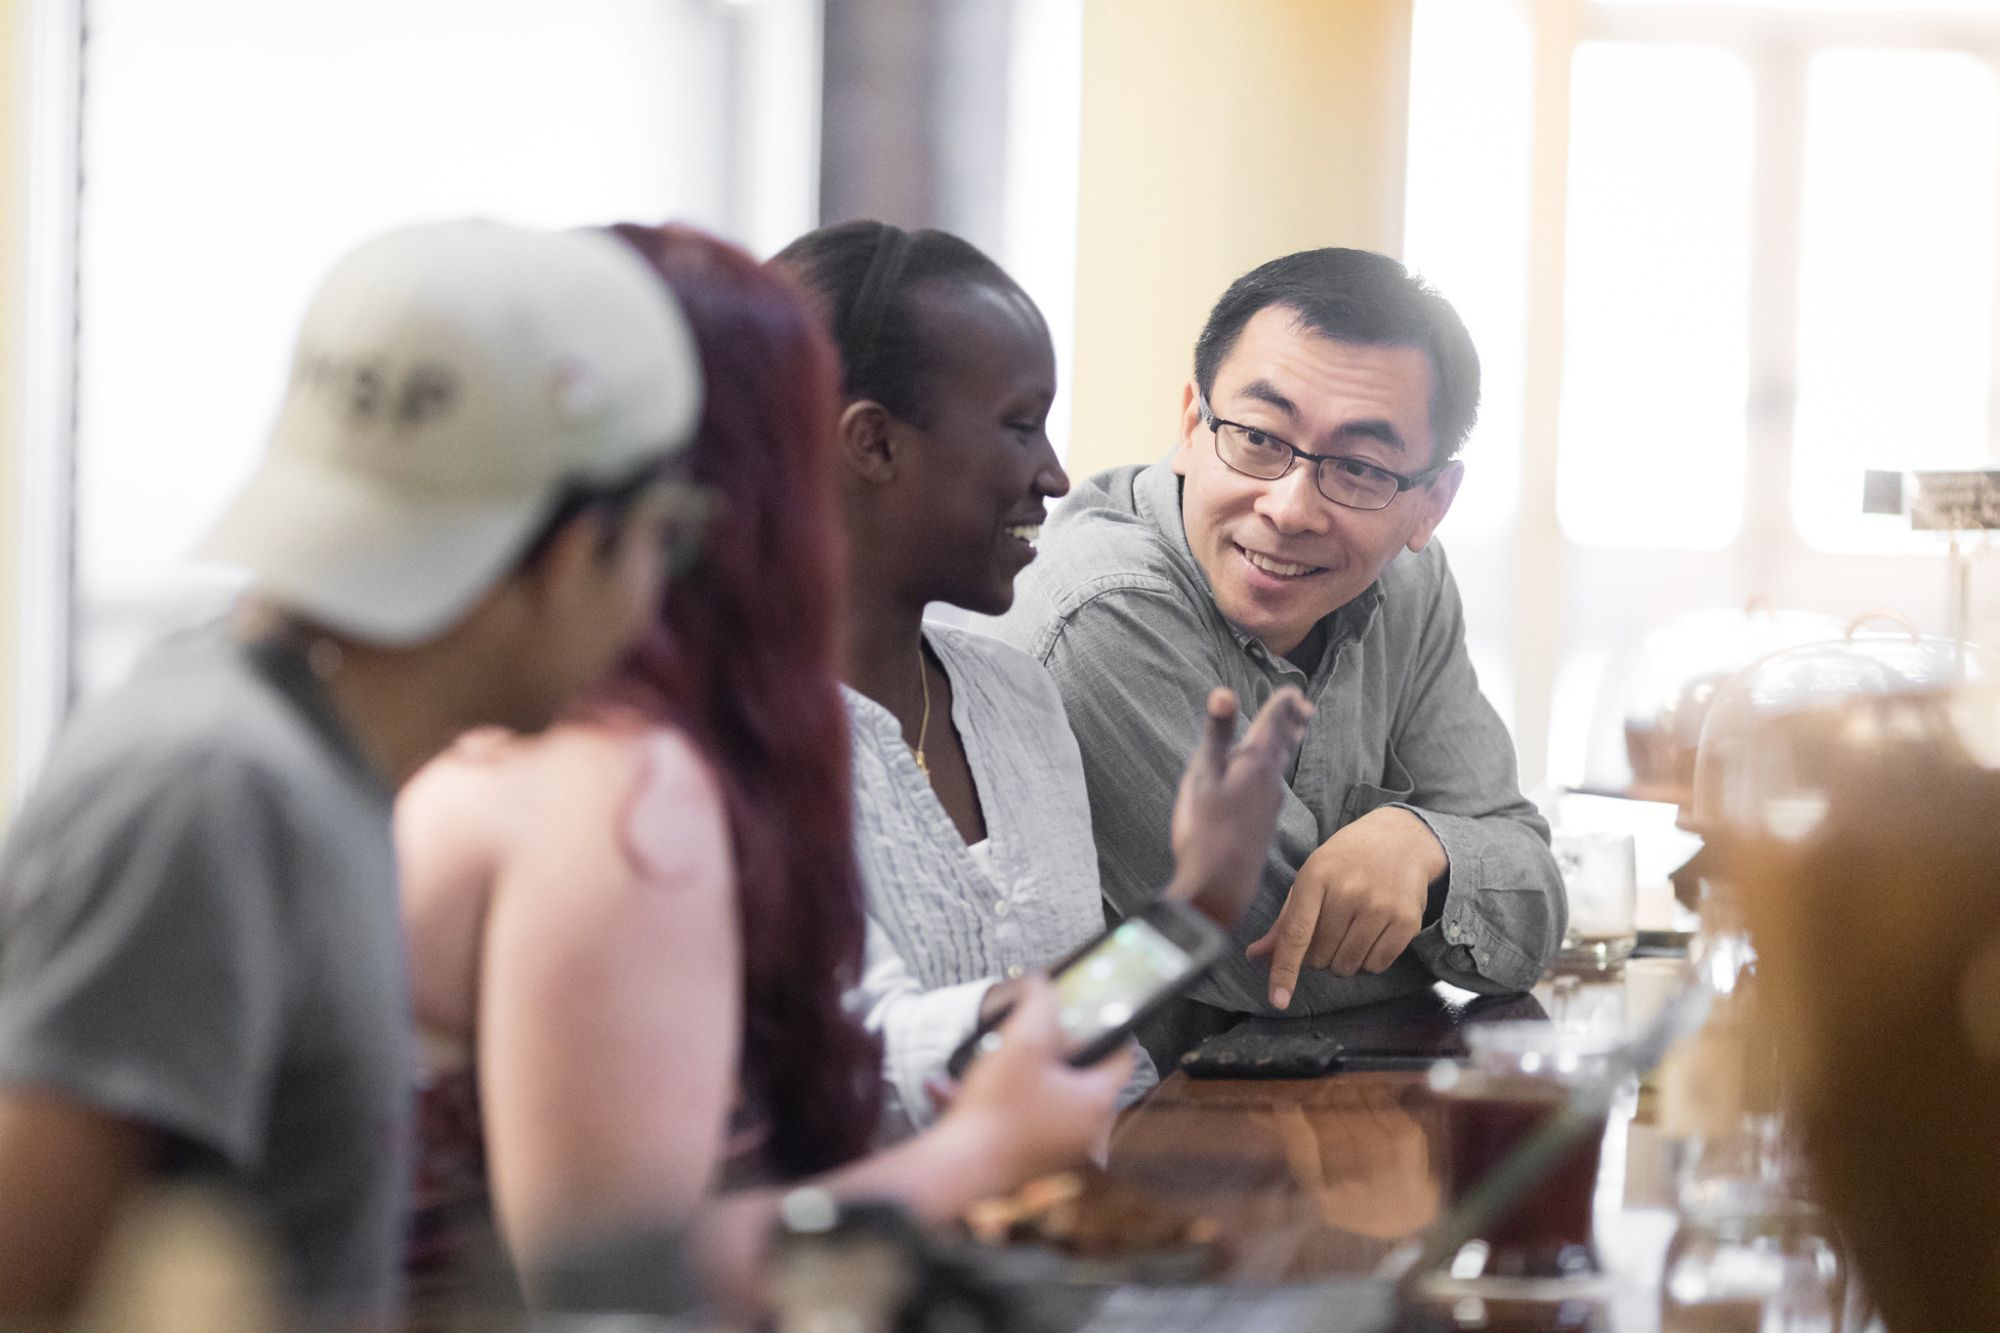 An economy college professor is talking with his students at a local cafe.